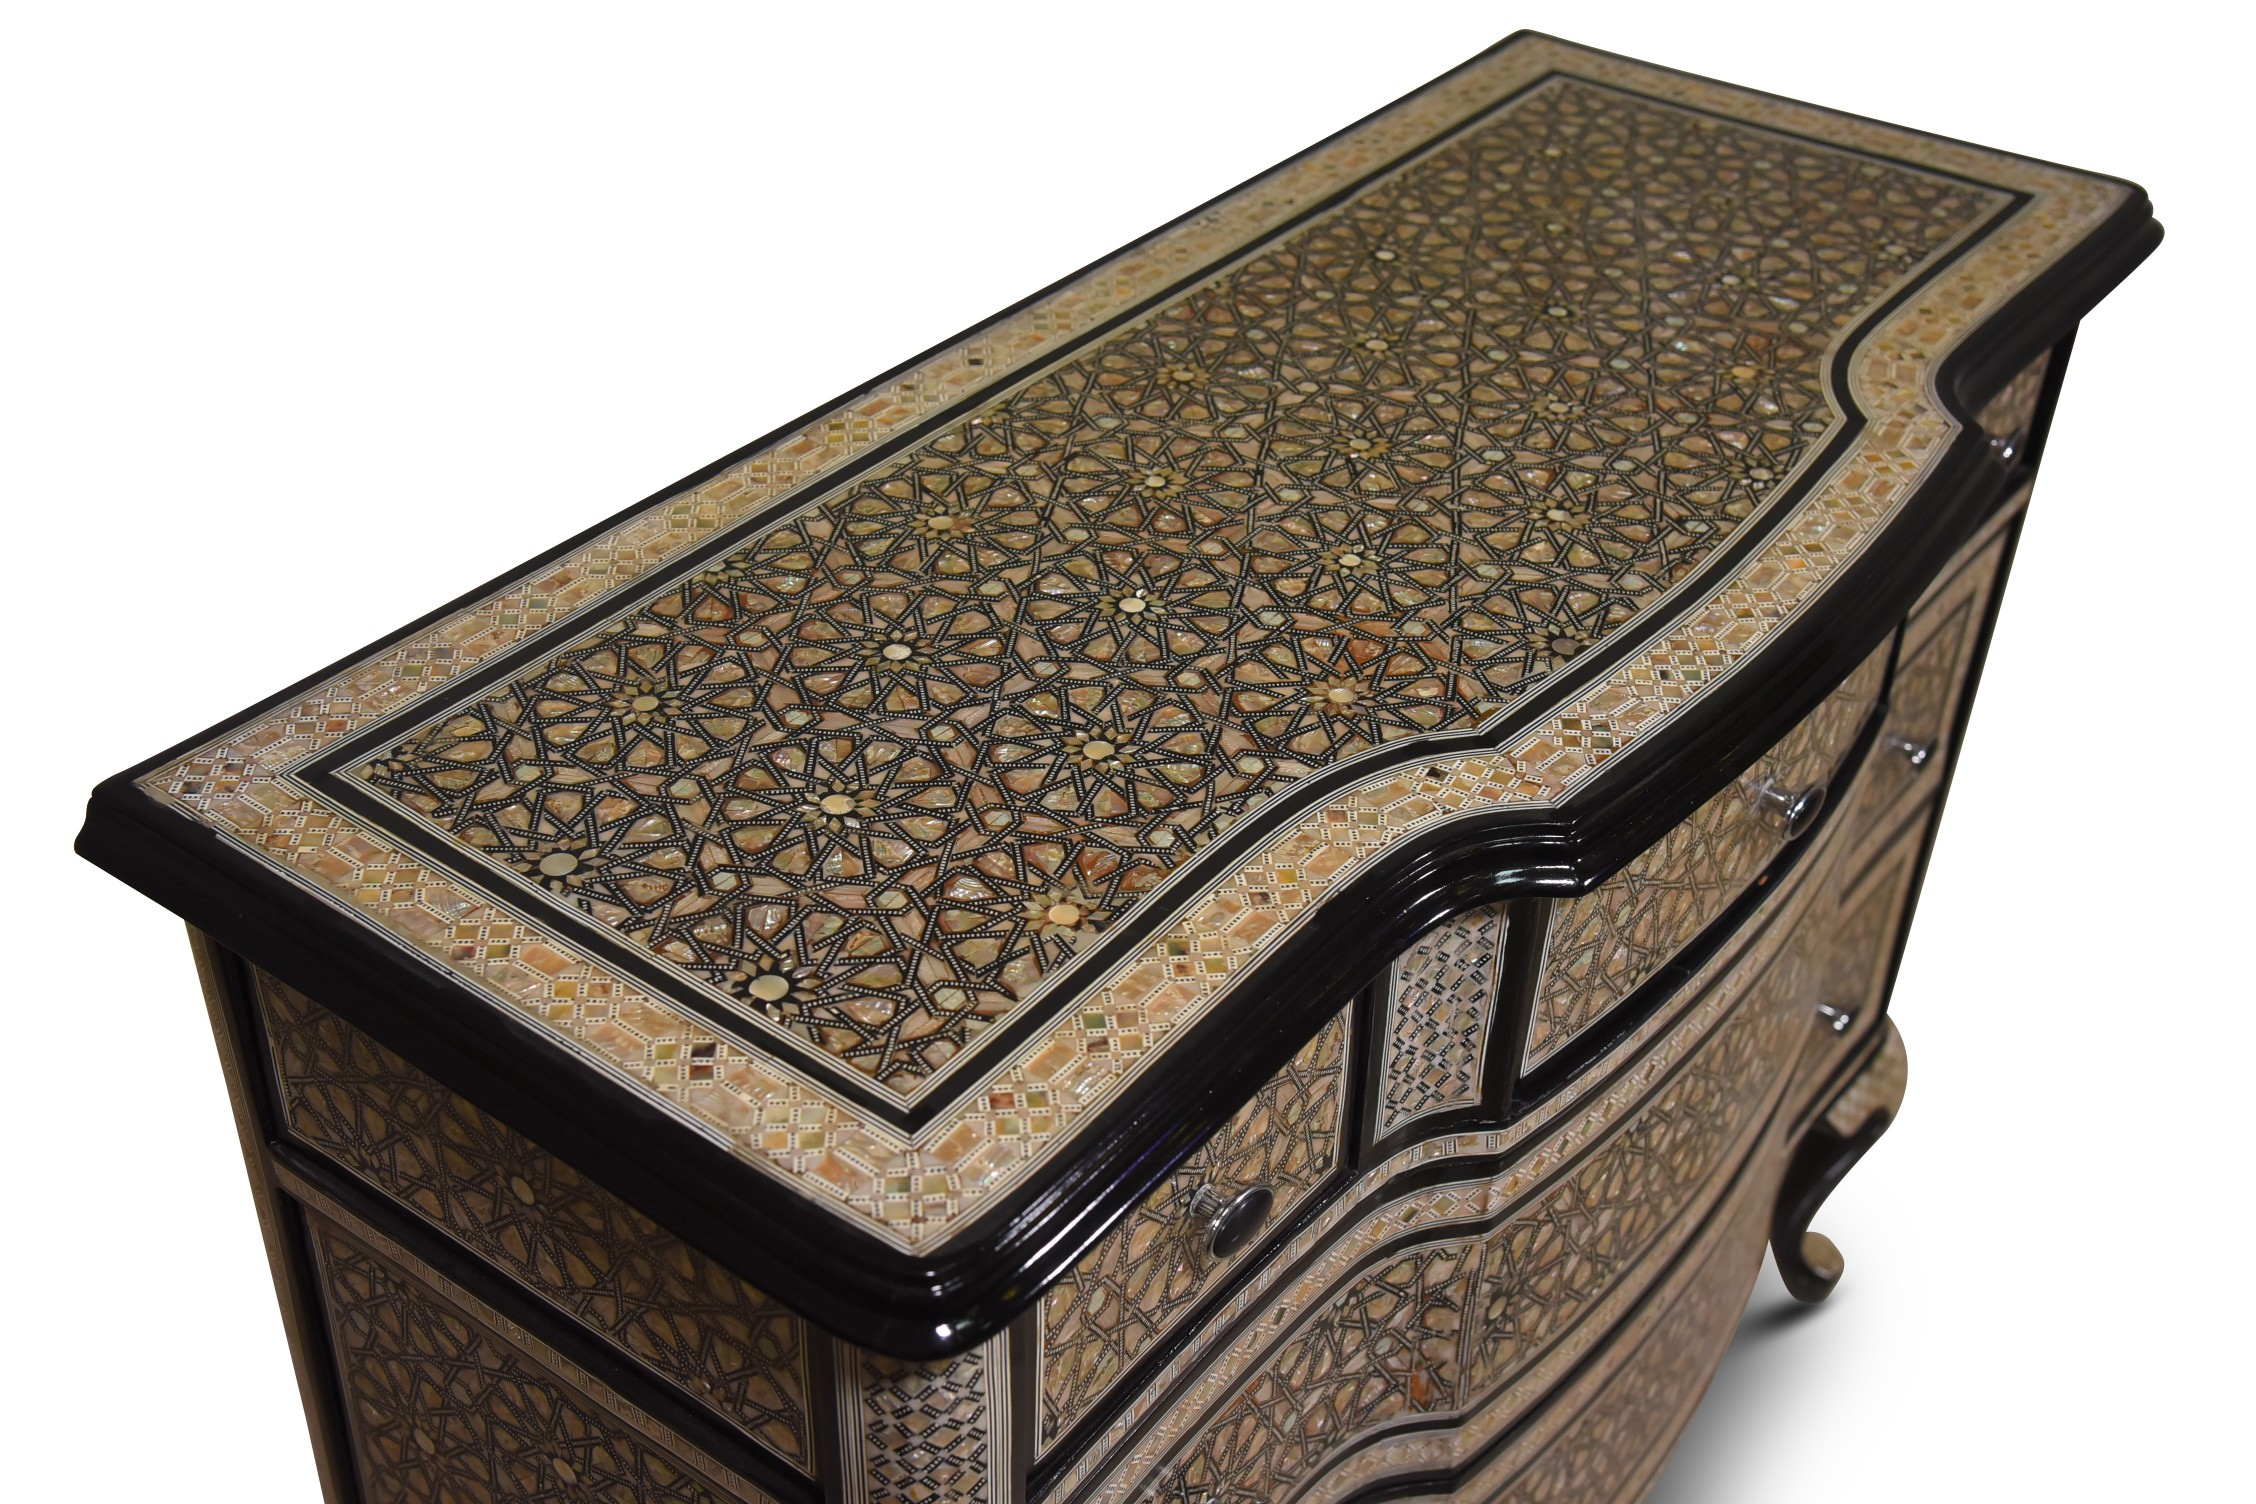 Moroccan Style Chest of Drawers